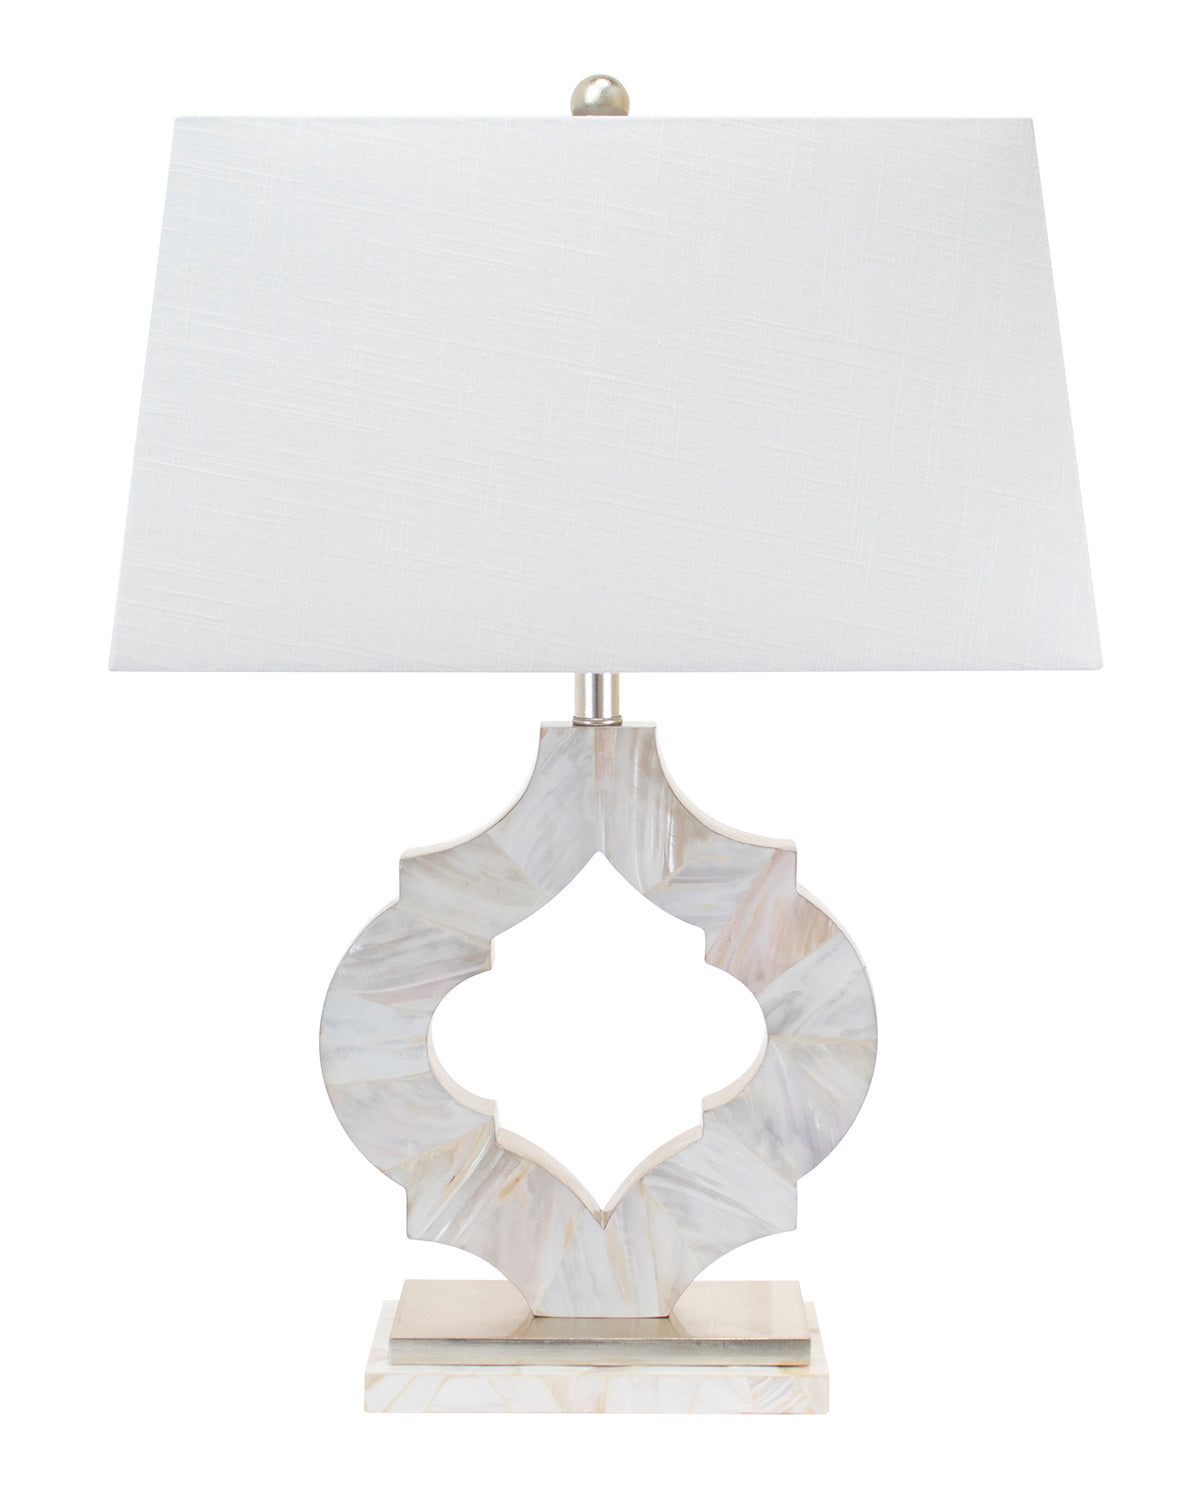 Sarasota Mother of Pearl Table Lamp - NEW - Couture Lamps